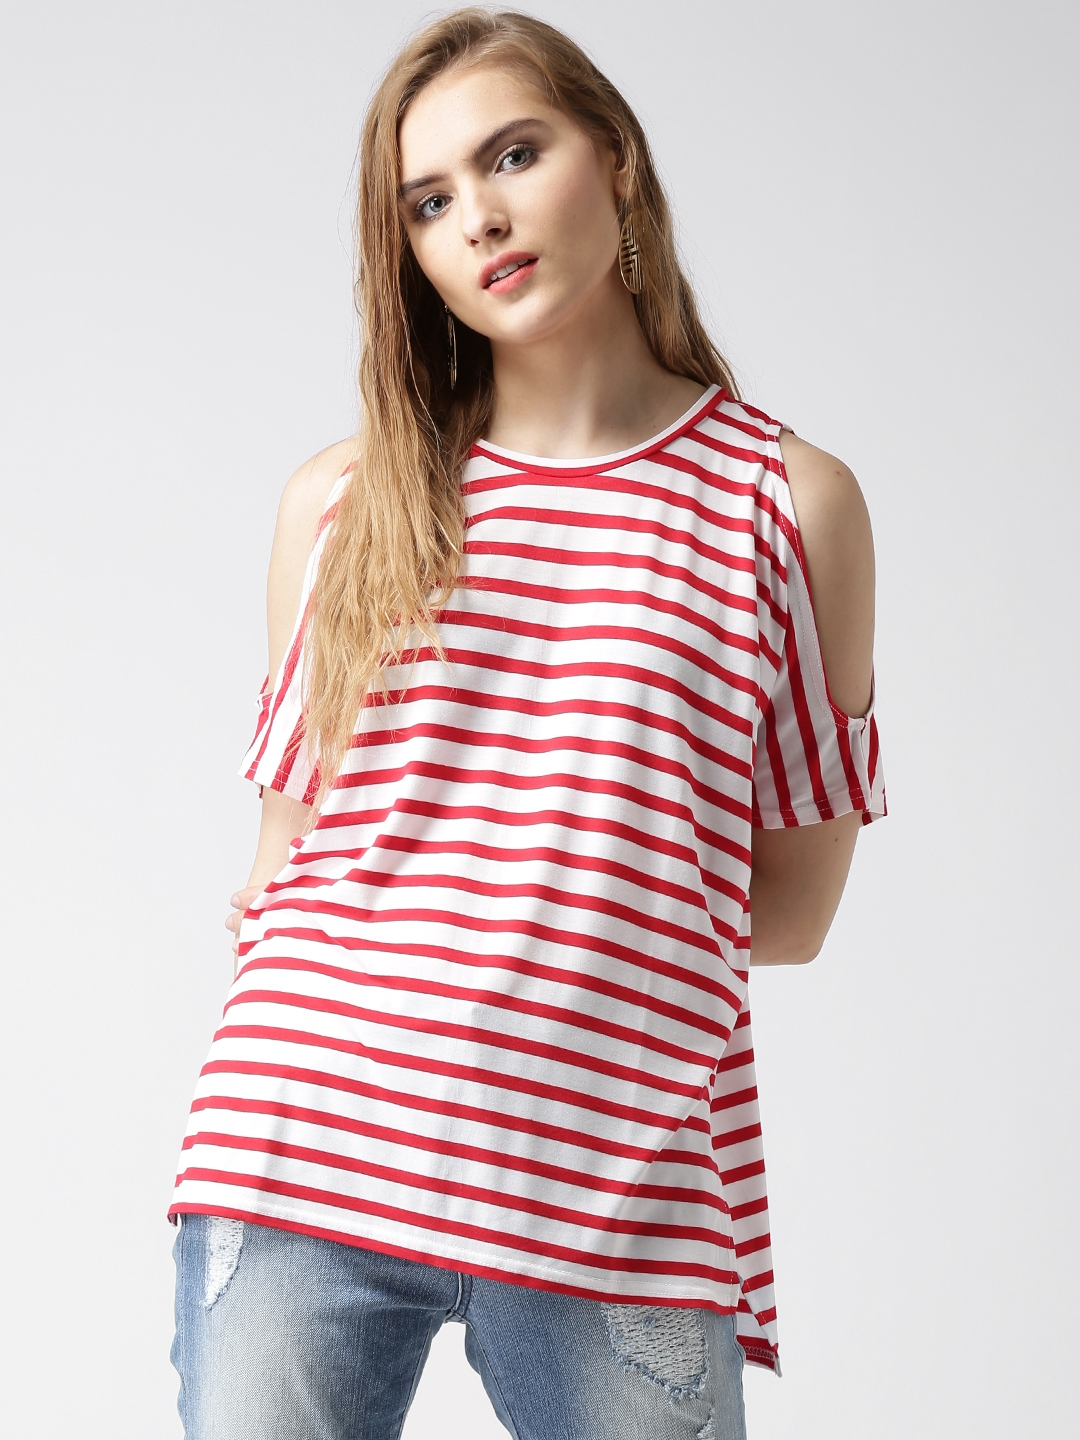 55f4c0b4c82 Buy New Look Red & White Striped Cold Shoulder Top - Tops for Women ...